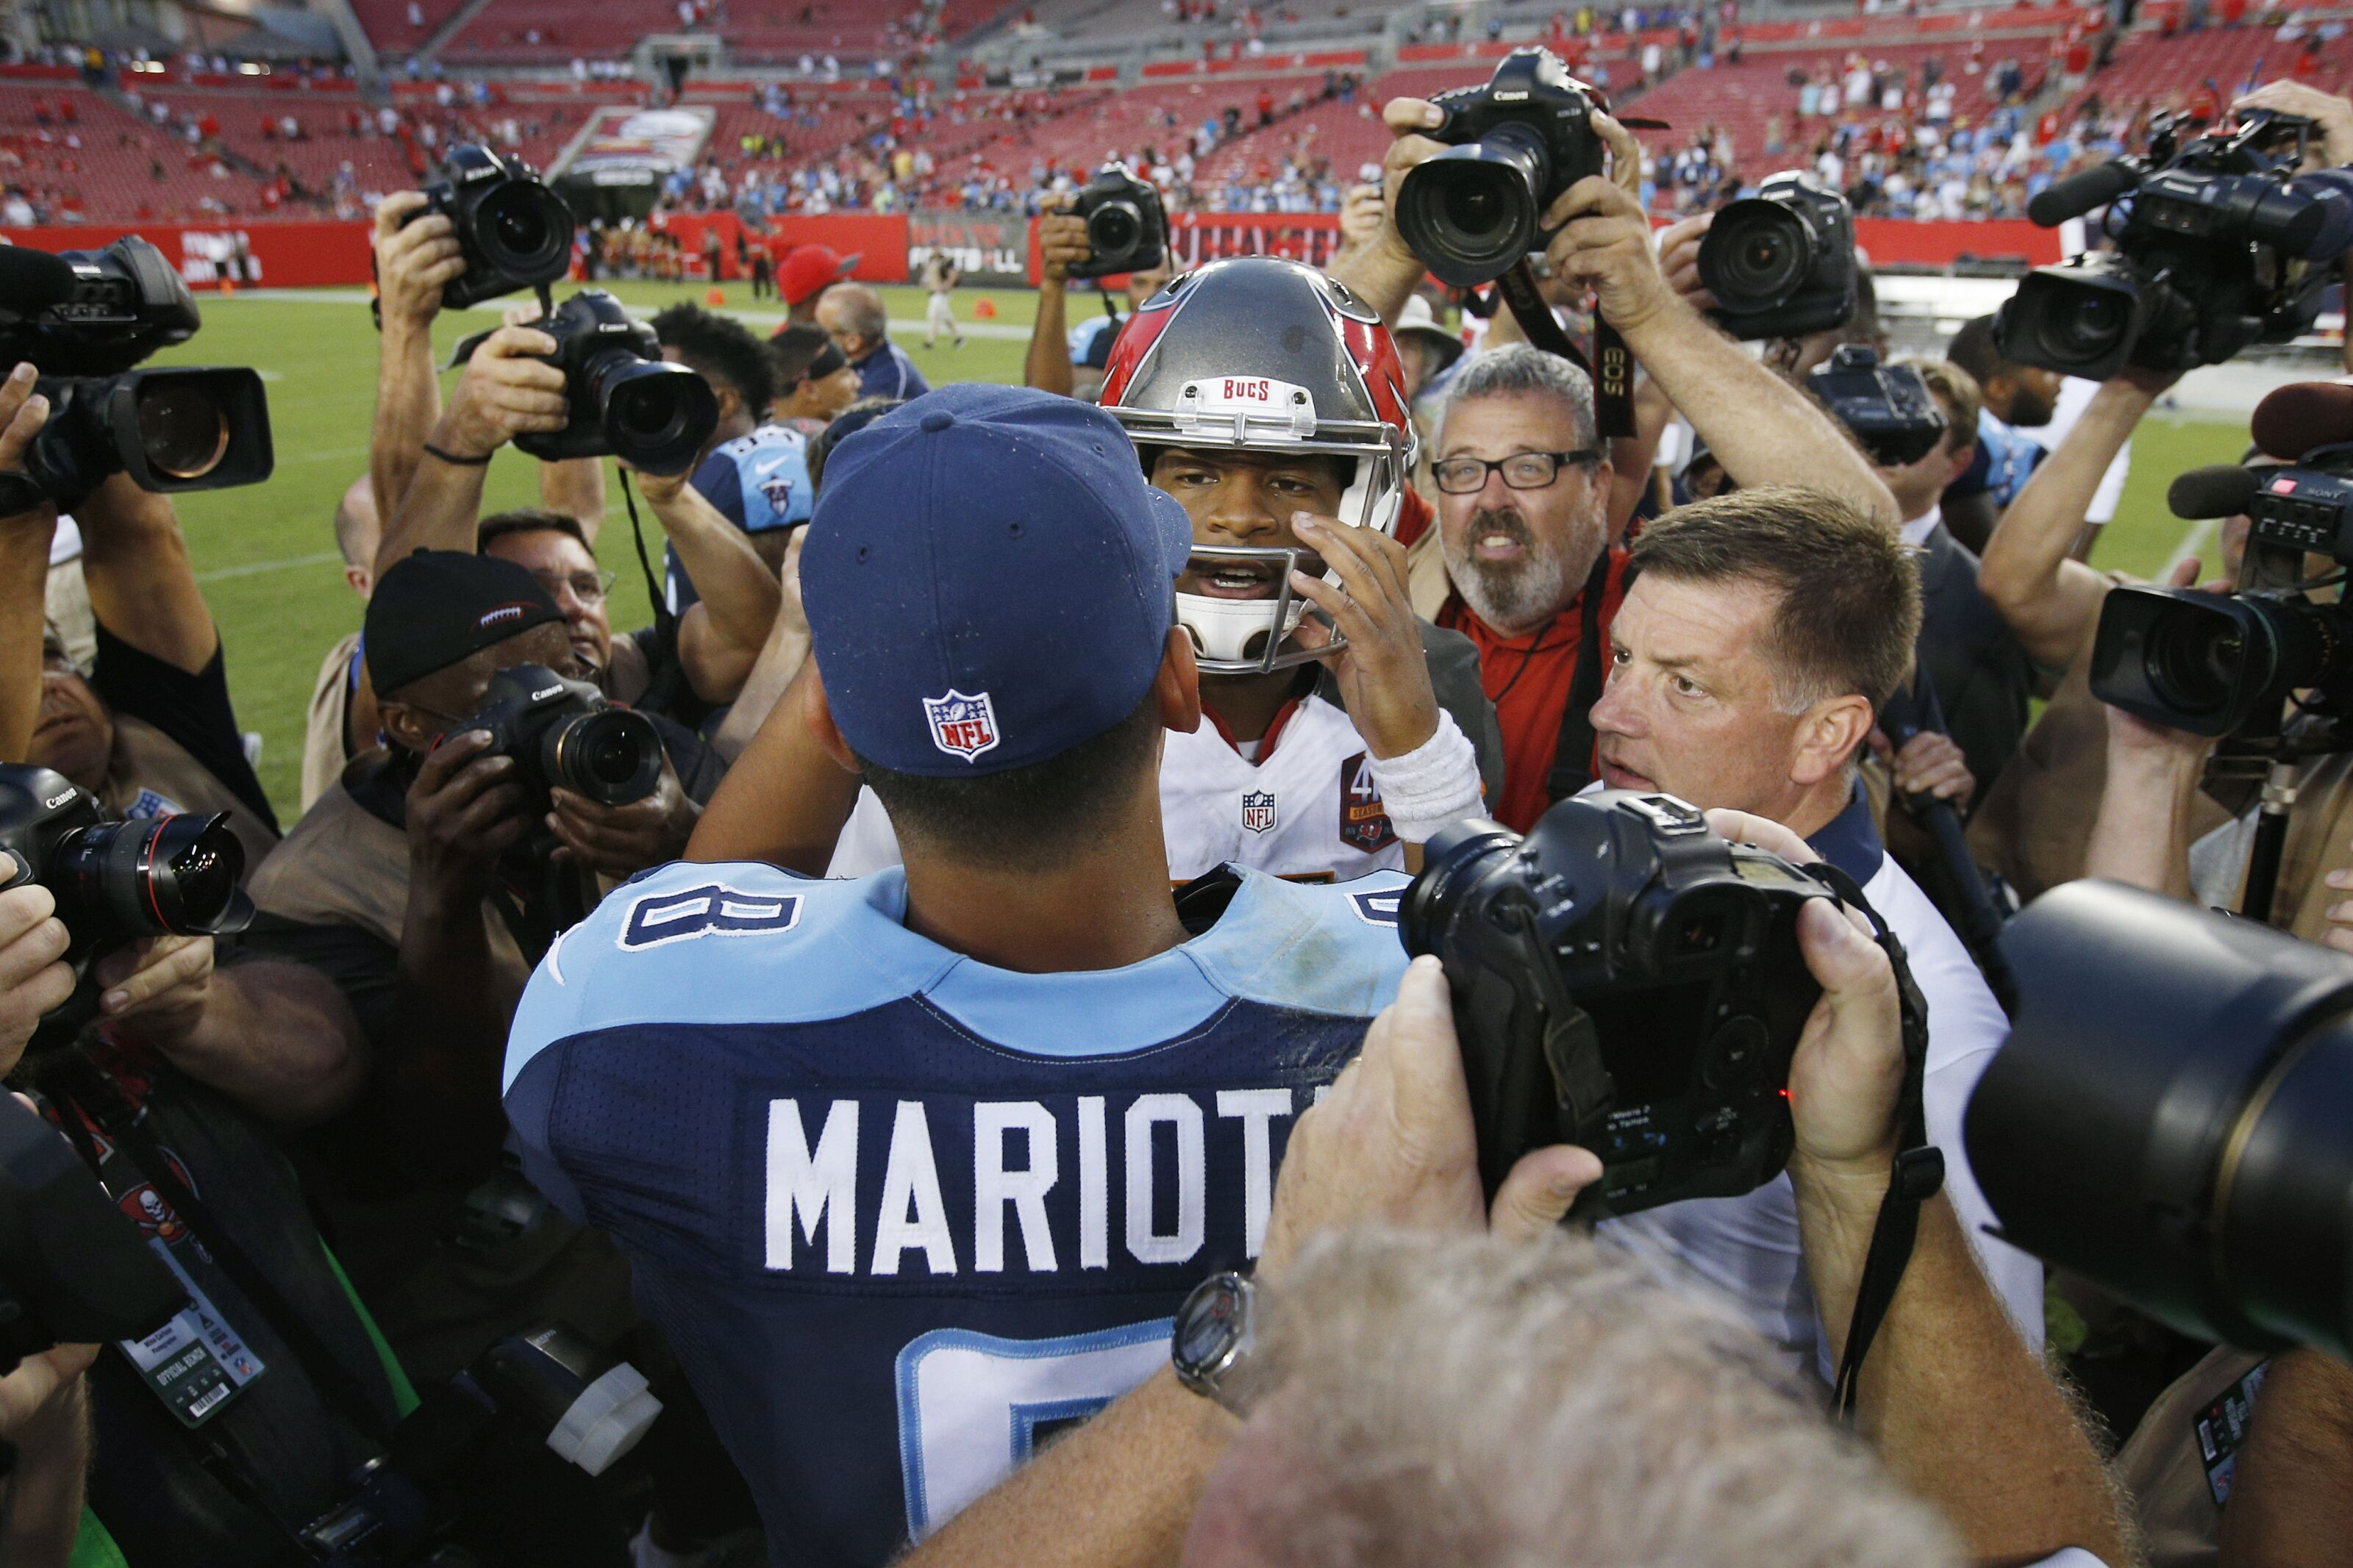 Marcus Mariota Has an Important Game Against the Bucs on Saturday